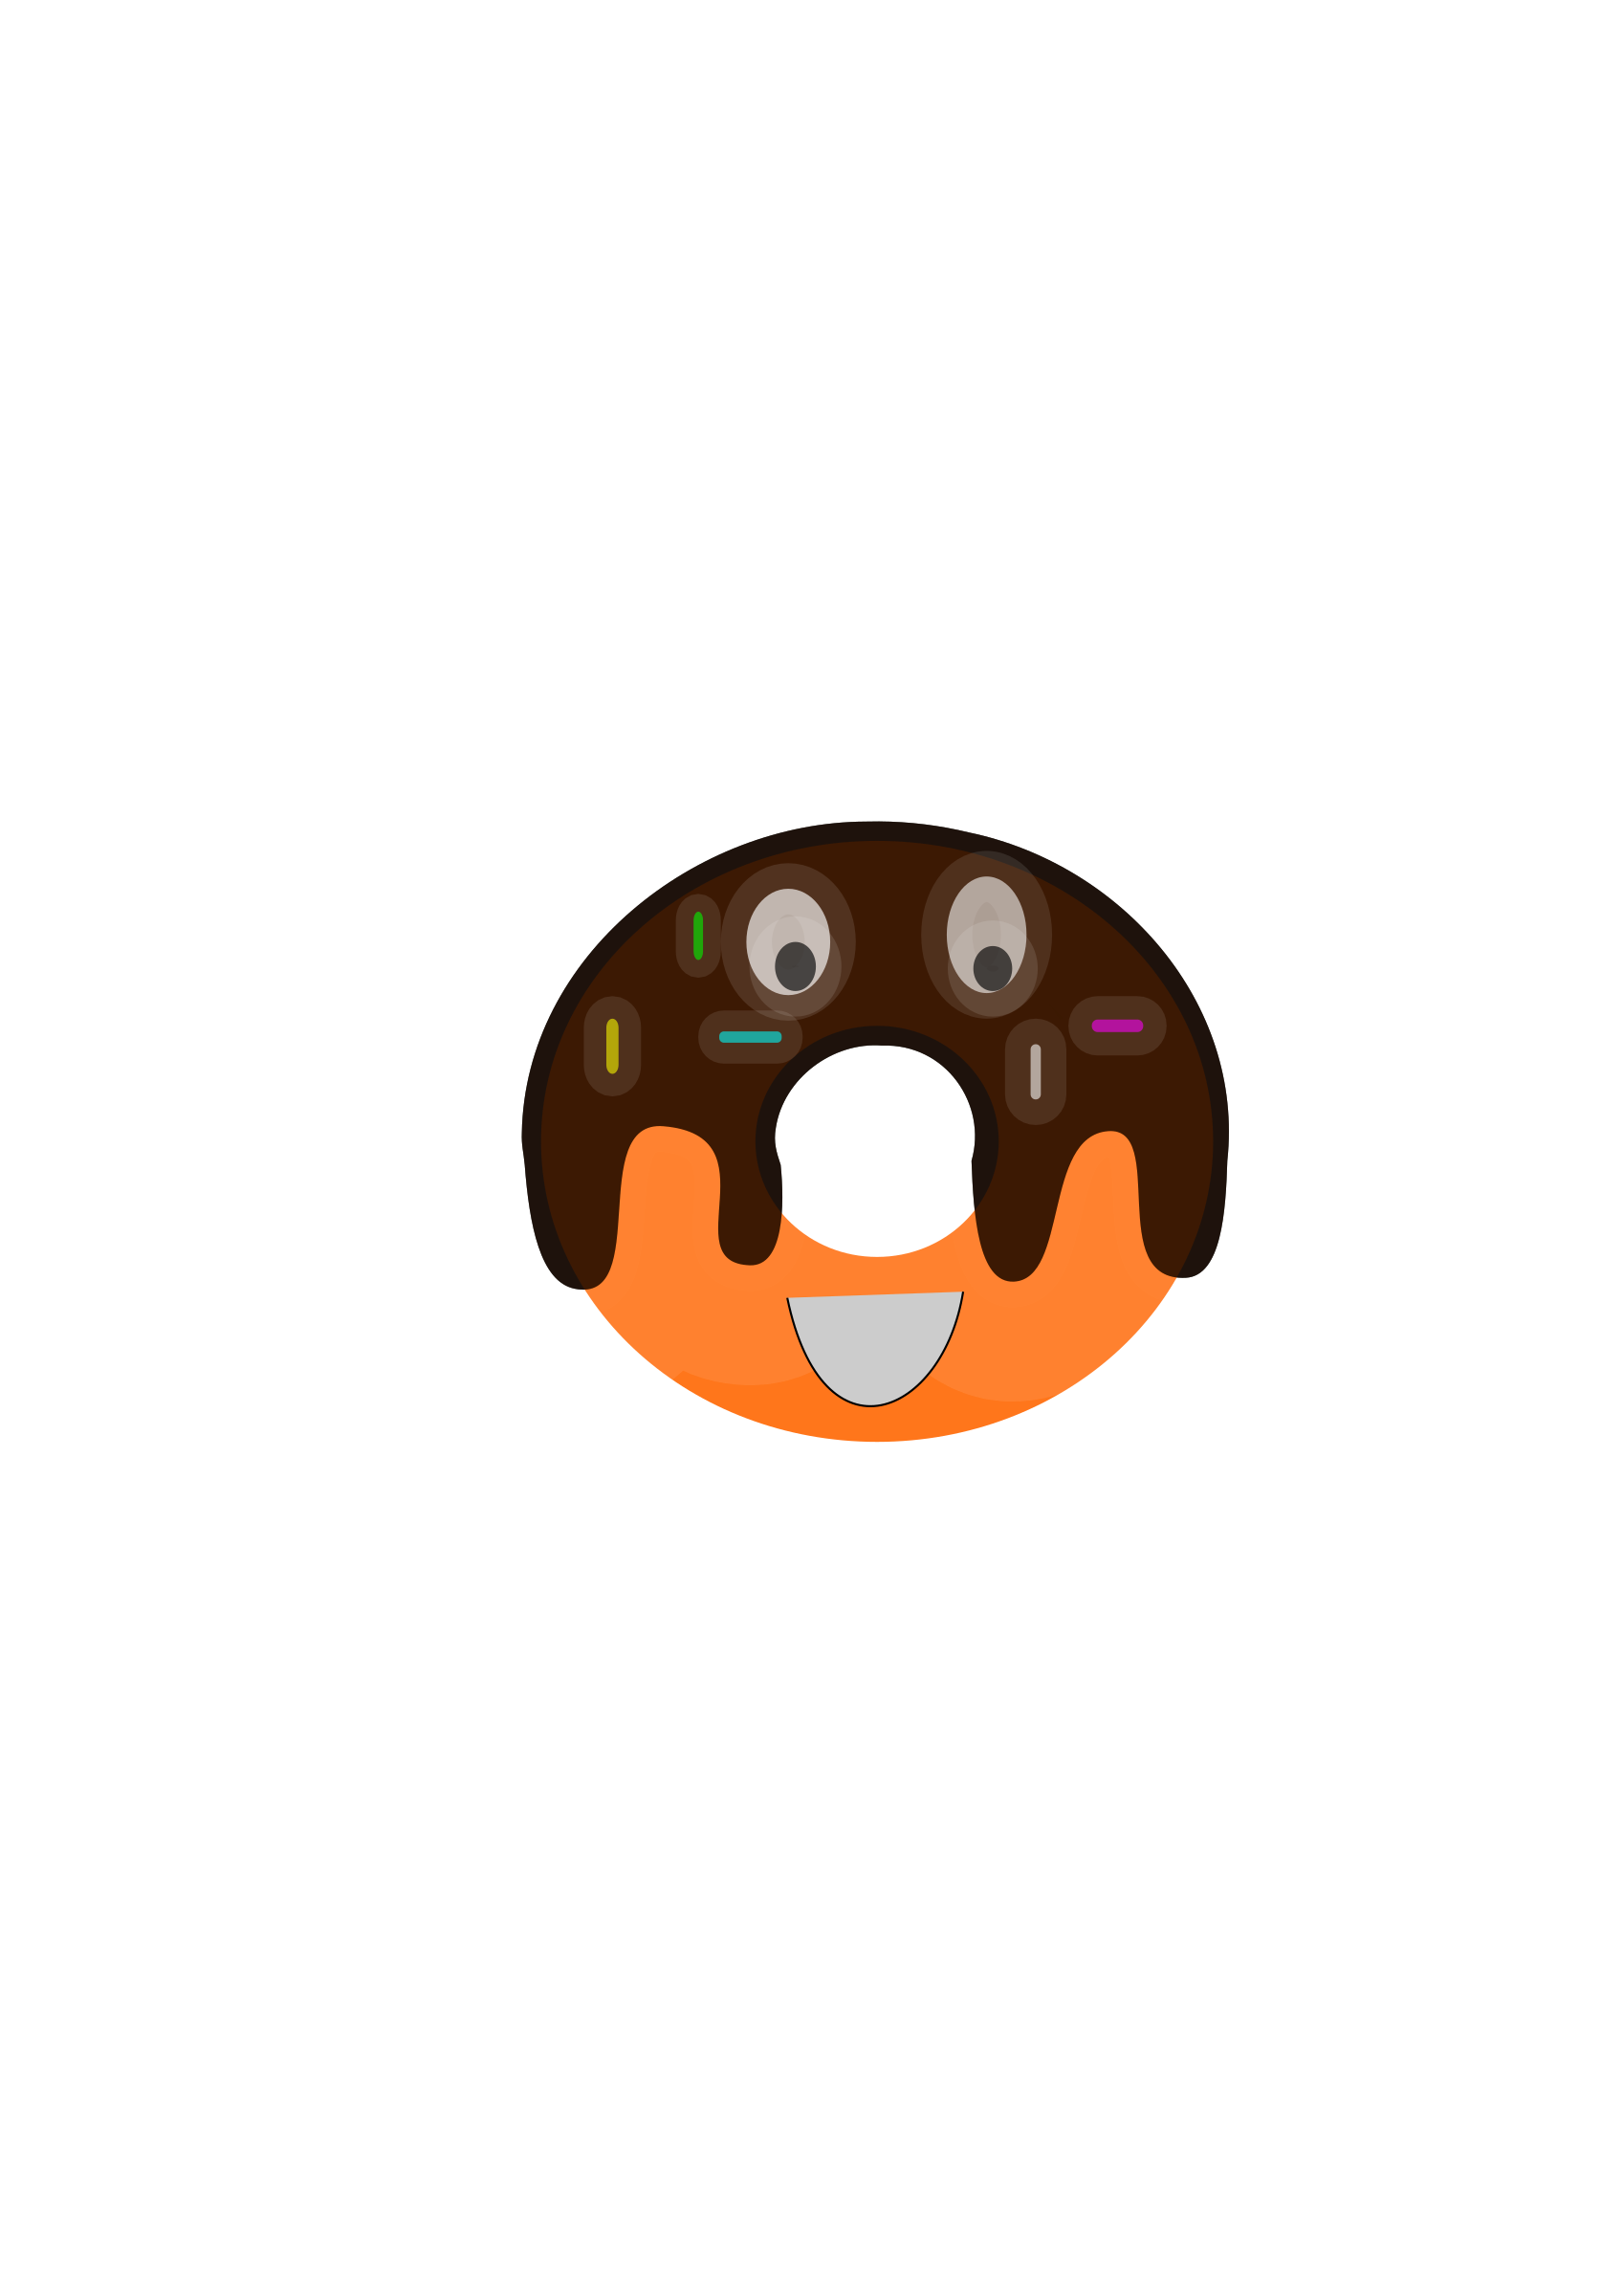 Big image png. Donuts clipart face